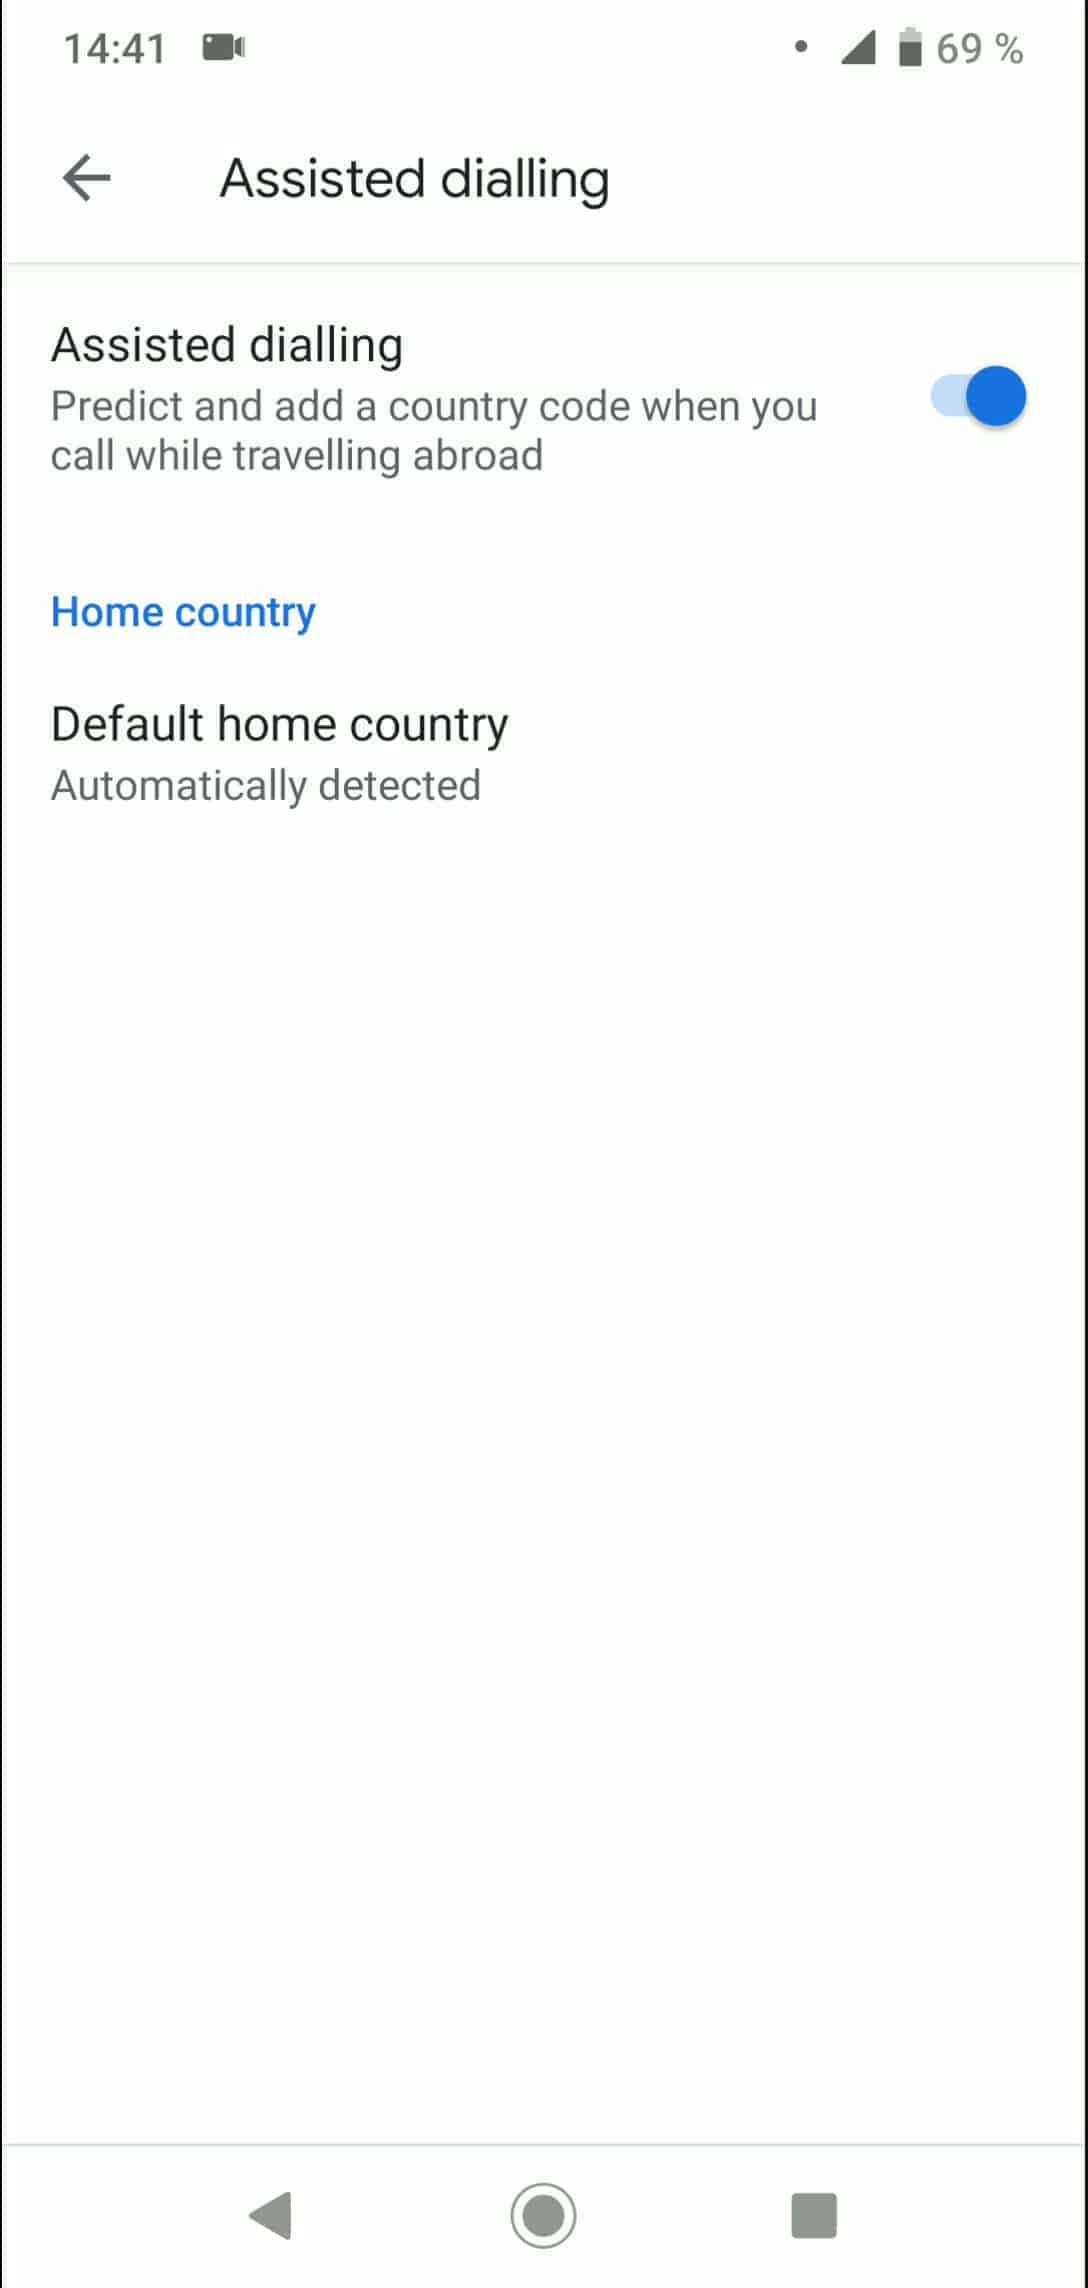 Step 5: Tap on Default home country